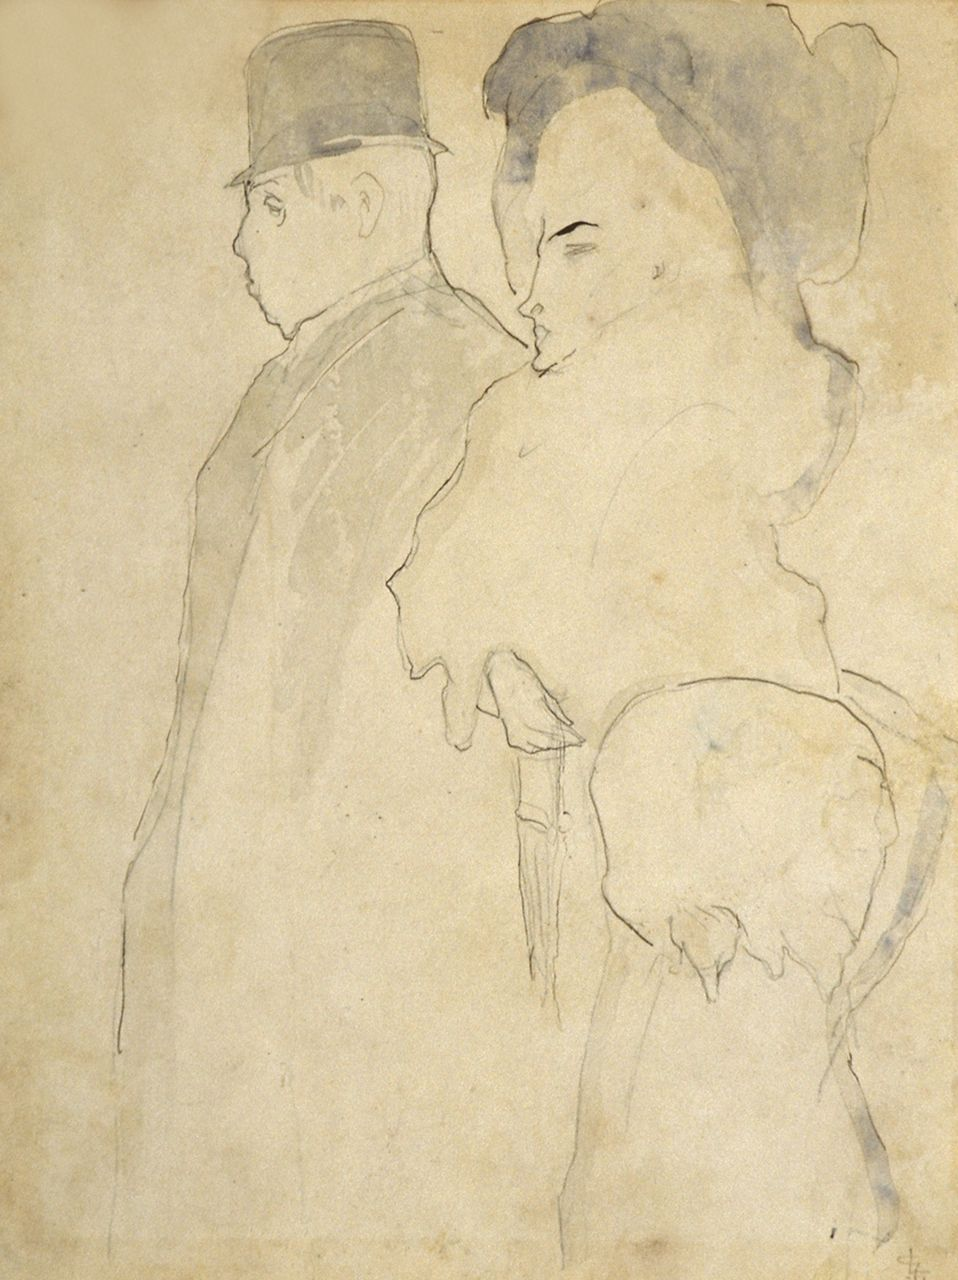 Gestel L.  | Leendert 'Leo' Gestel, Strolling couple, pen and watercolour on paper 26.5 x 20.0 cm, signed l.r. with monogram